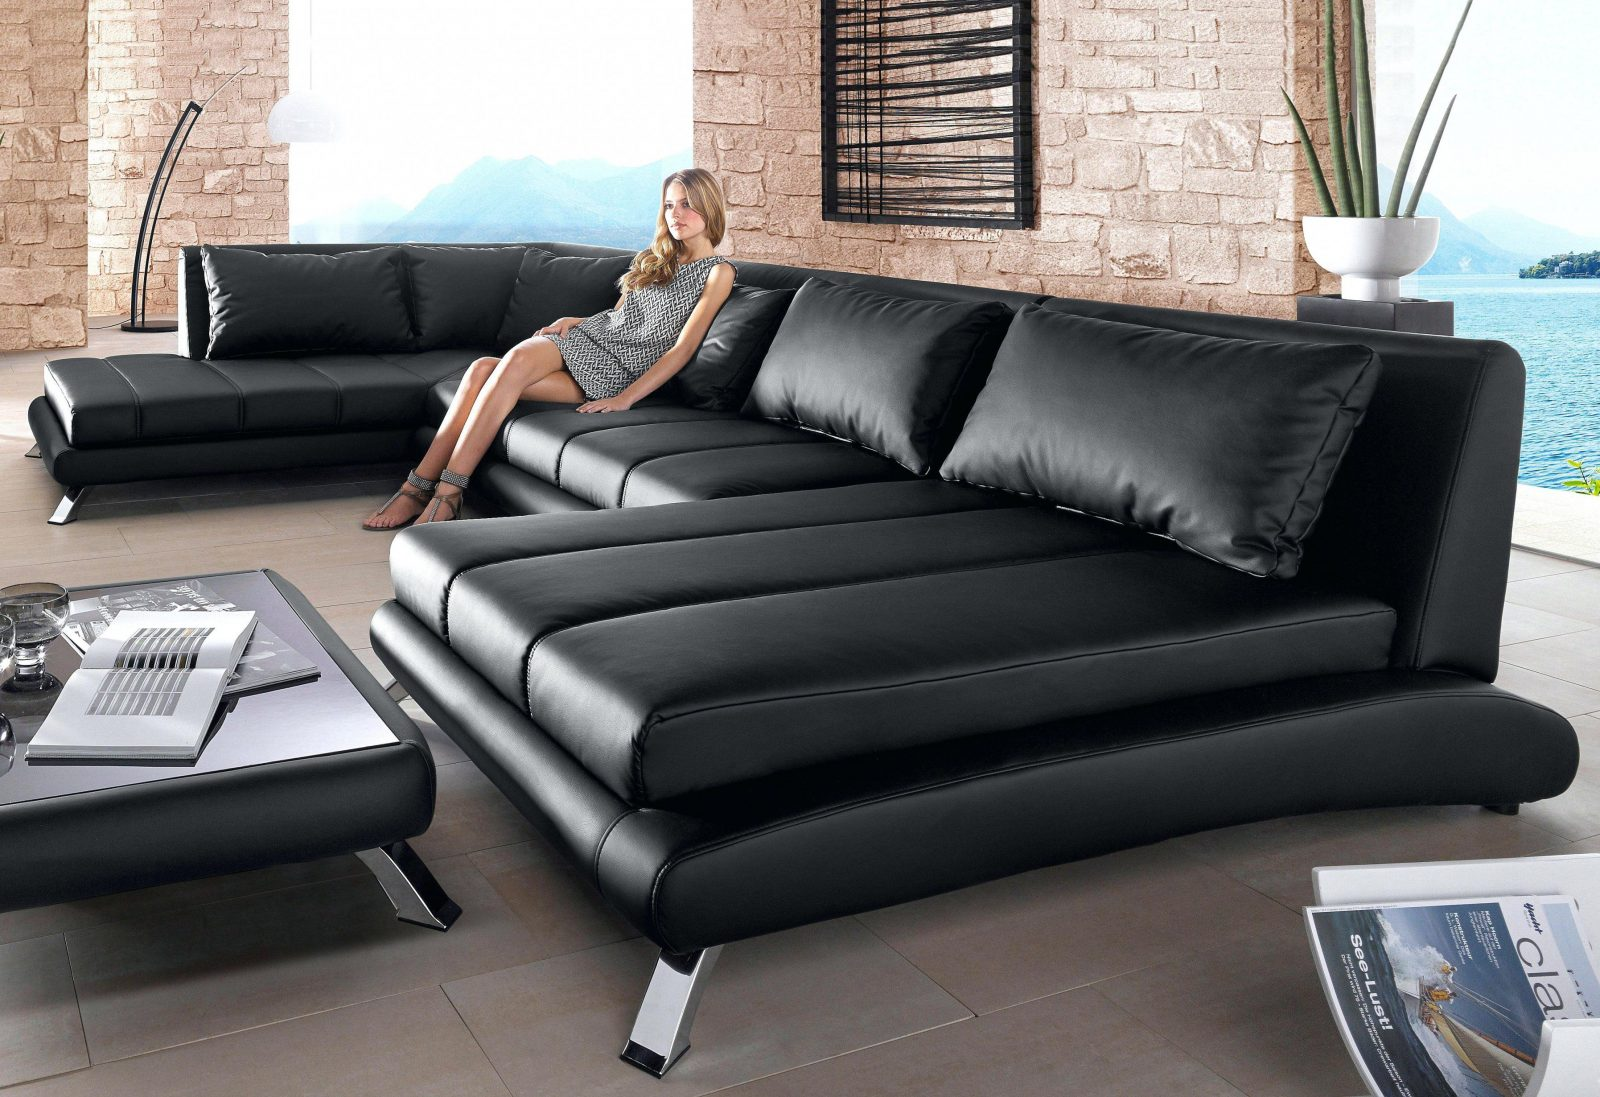 Otto Wohnlandschaft Xxl Sit More Sofa Sofa 1 4 – Capouest von Sit And More Wohnlandschaft Photo